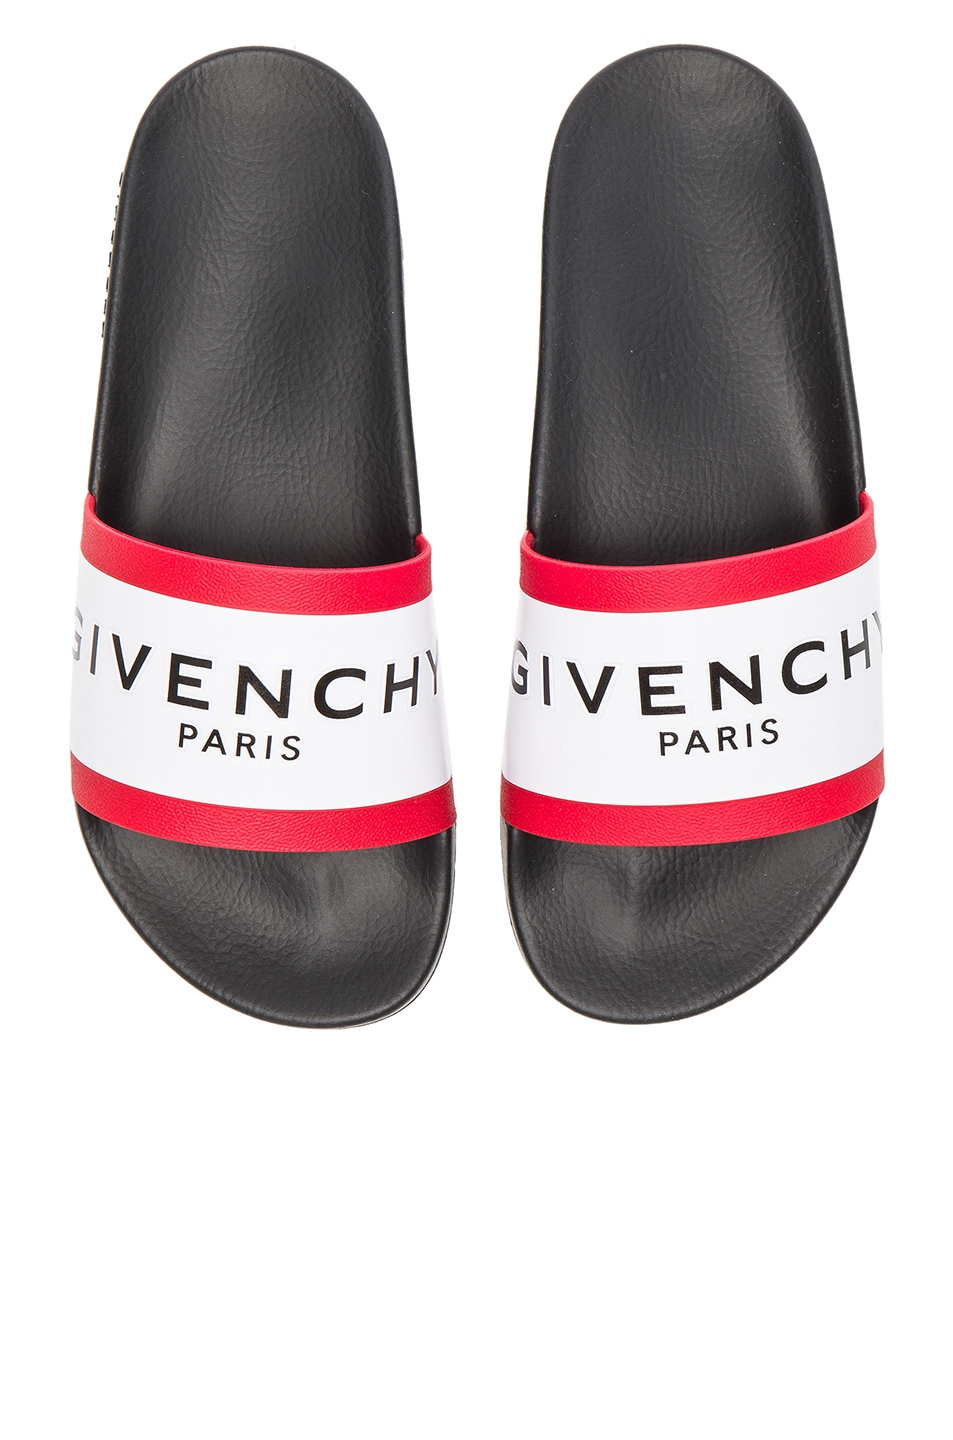 Image 1 of Givenchy Slide Sandals in Black, White & Red